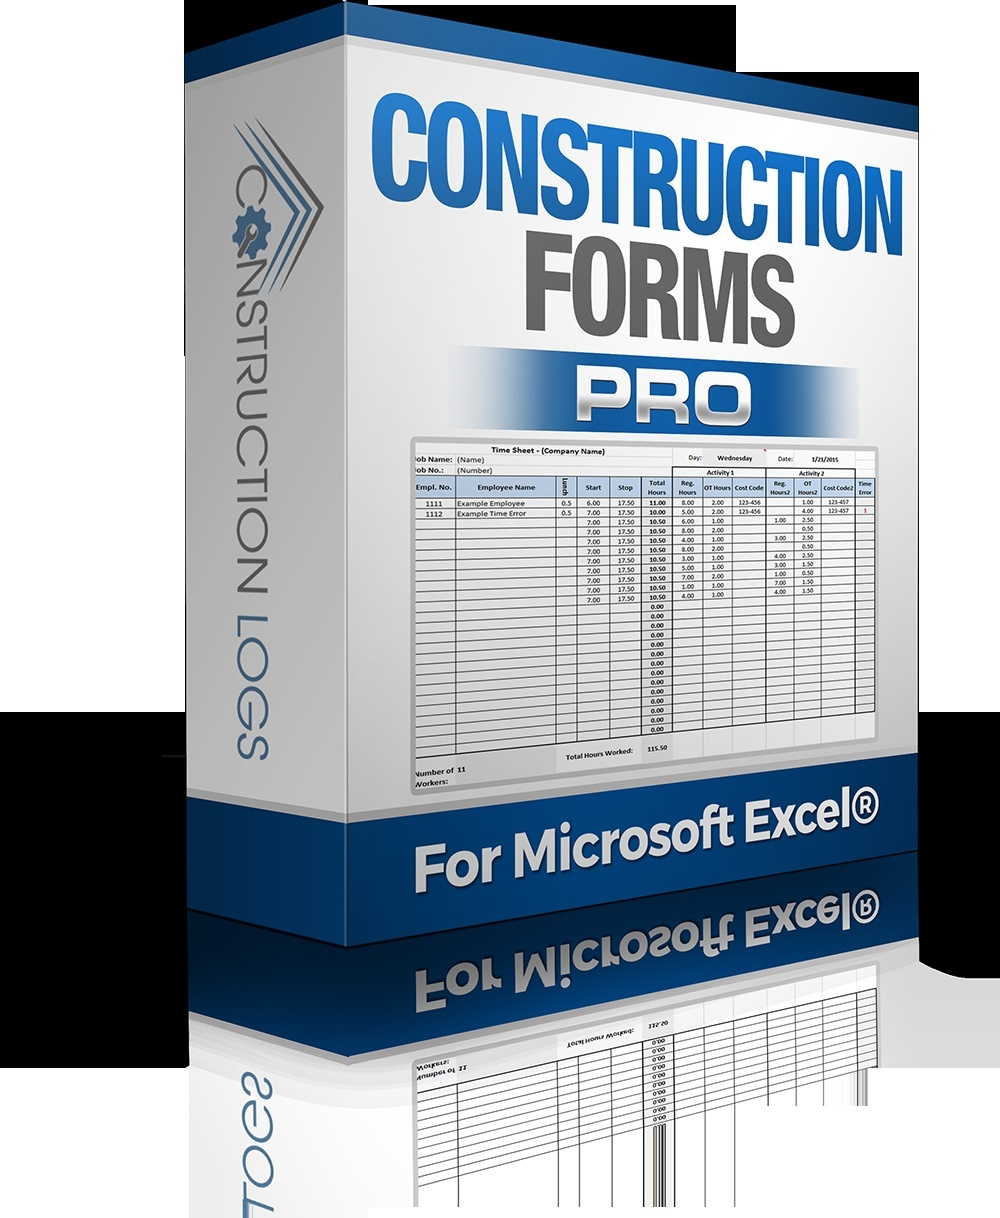 Construction Forms Pro